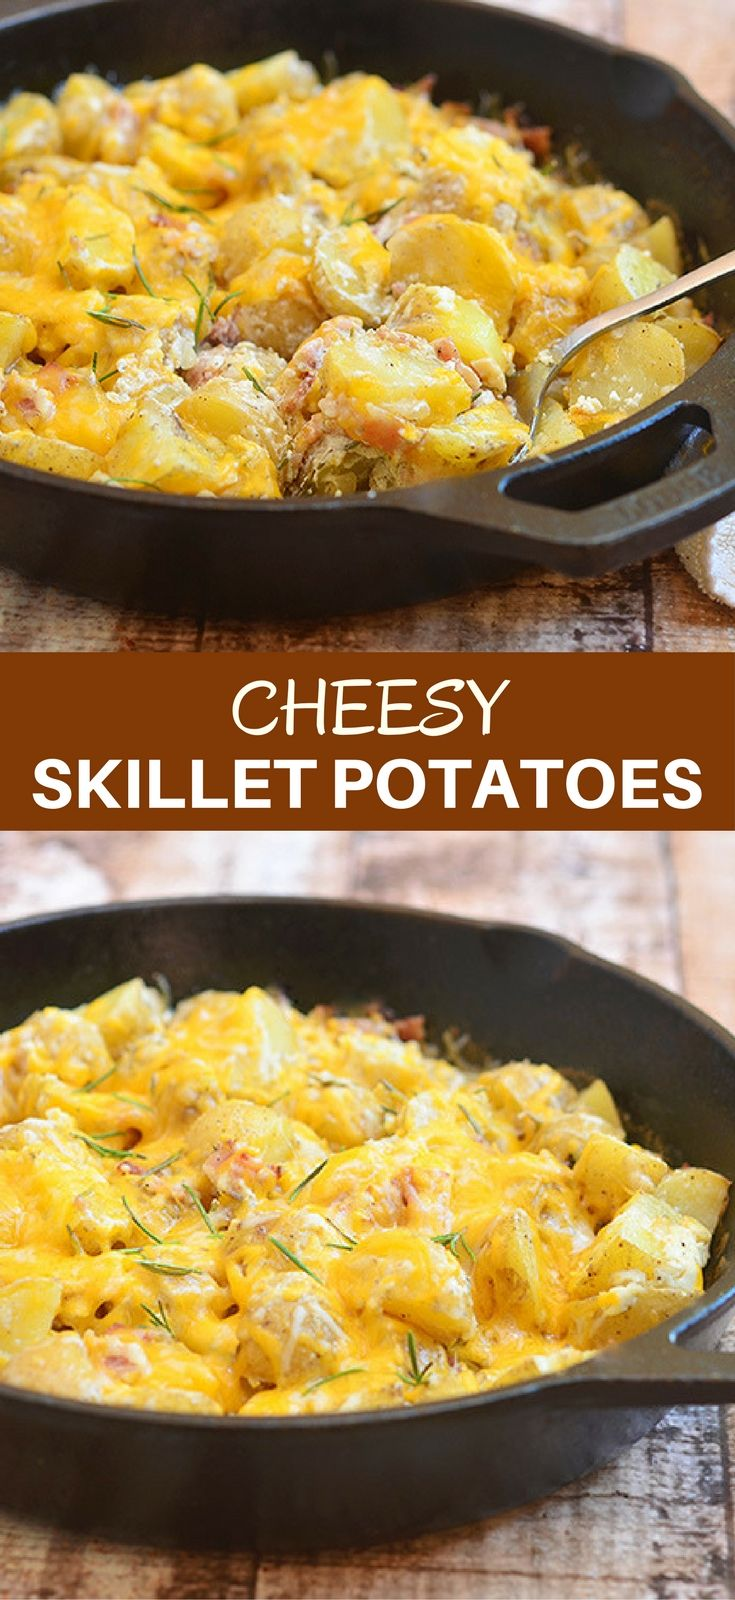 Cheesy Skillet Potatoes is the ultimate potato side dish! With fluffy Yukon gold potatoes, creamy sour cream sauce, crisp bacon, gooey cheese, and fresh  rosemary, it's hearty, delicious and a guaranteed family favorite. #cheesypotatoes #potatoes #sidedish #cheese